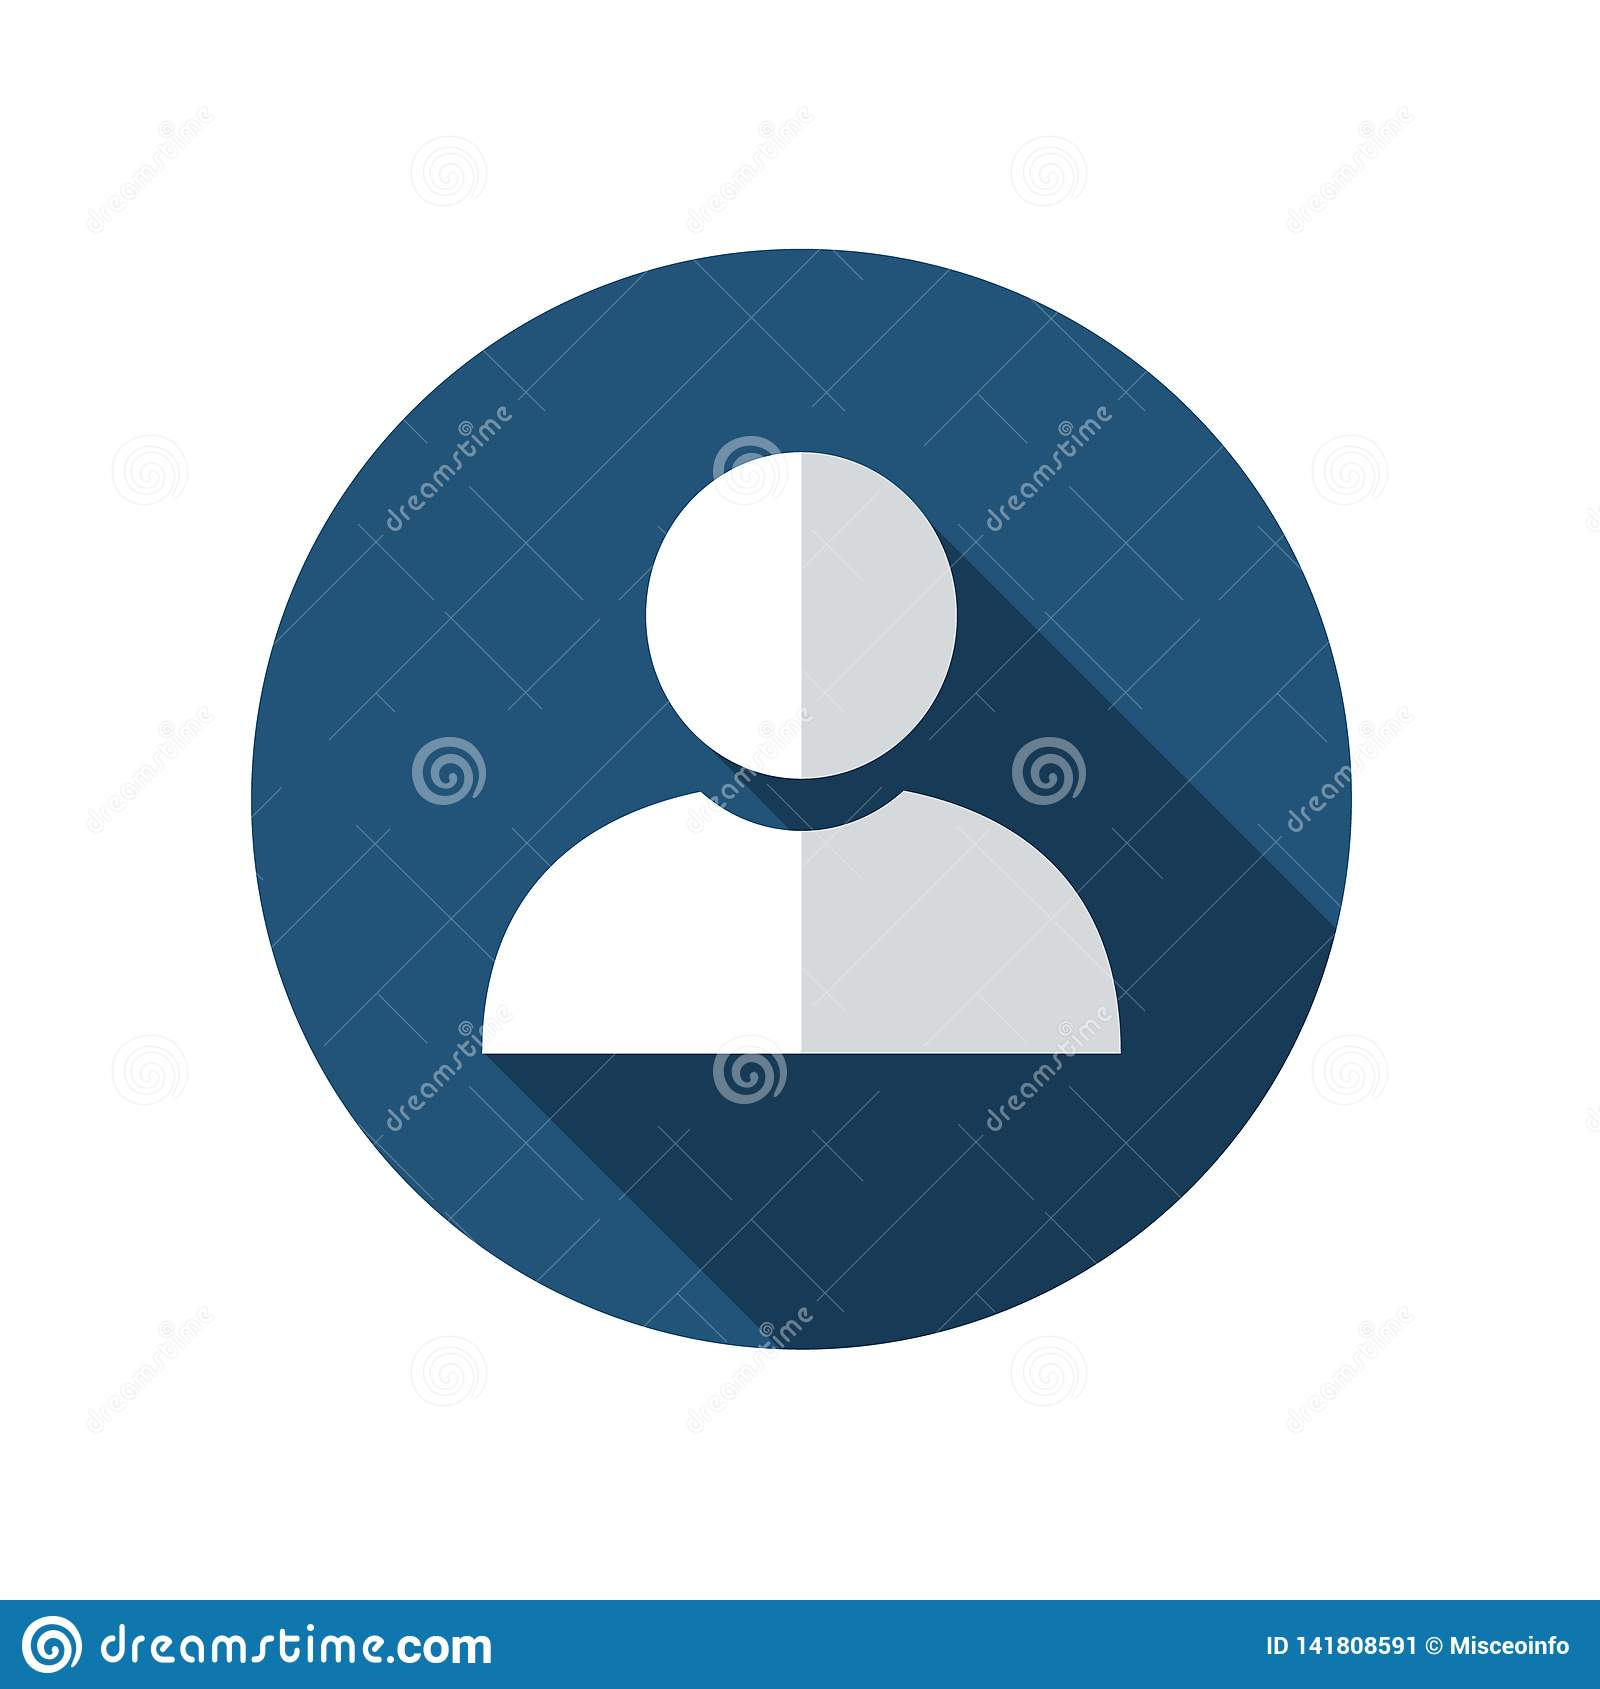 Person Vector Icon In New Flat Style User Icon Flat Human Symbol Stock Vector Illustration Of Long Internet 141808591 Download transparent human icon png for free on pngkey.com. https www dreamstime com person vector icon new flat style user human symbol long shadow illustration internet hours service shopping image141808591